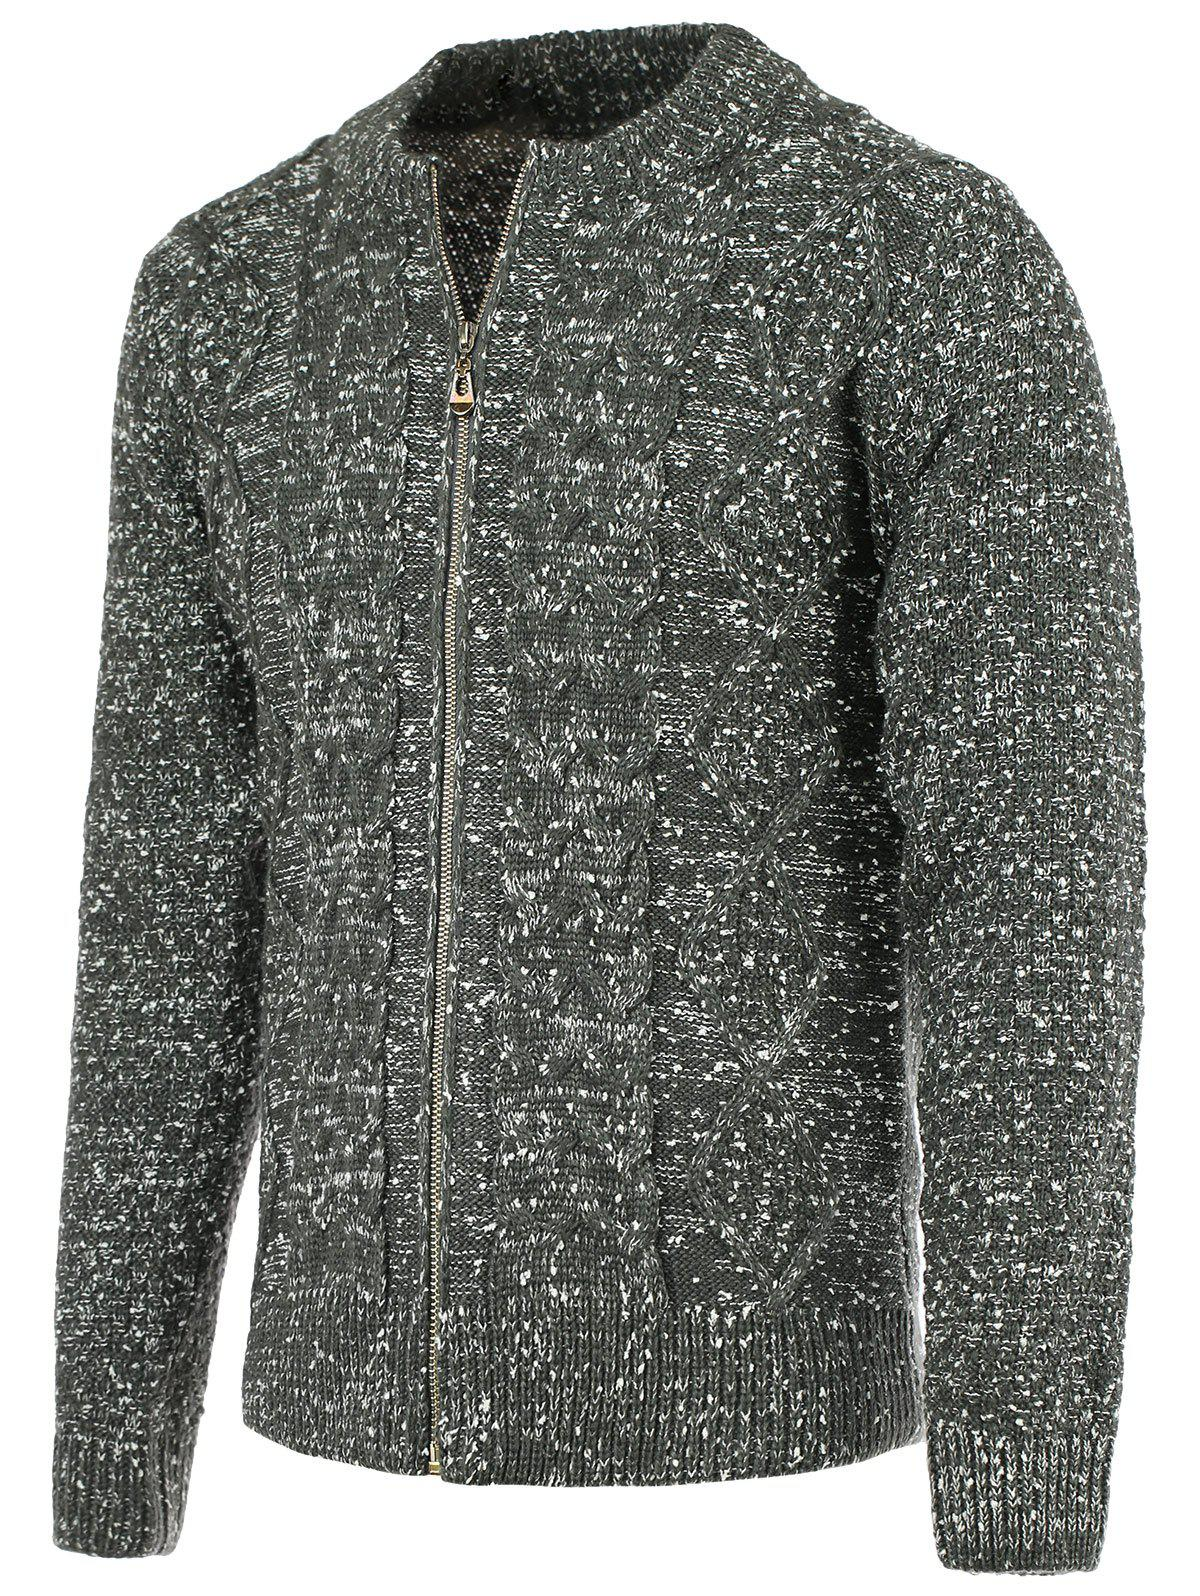 Cheap Heathered Braid Zip Up Long Sleeve Cardigan For Men